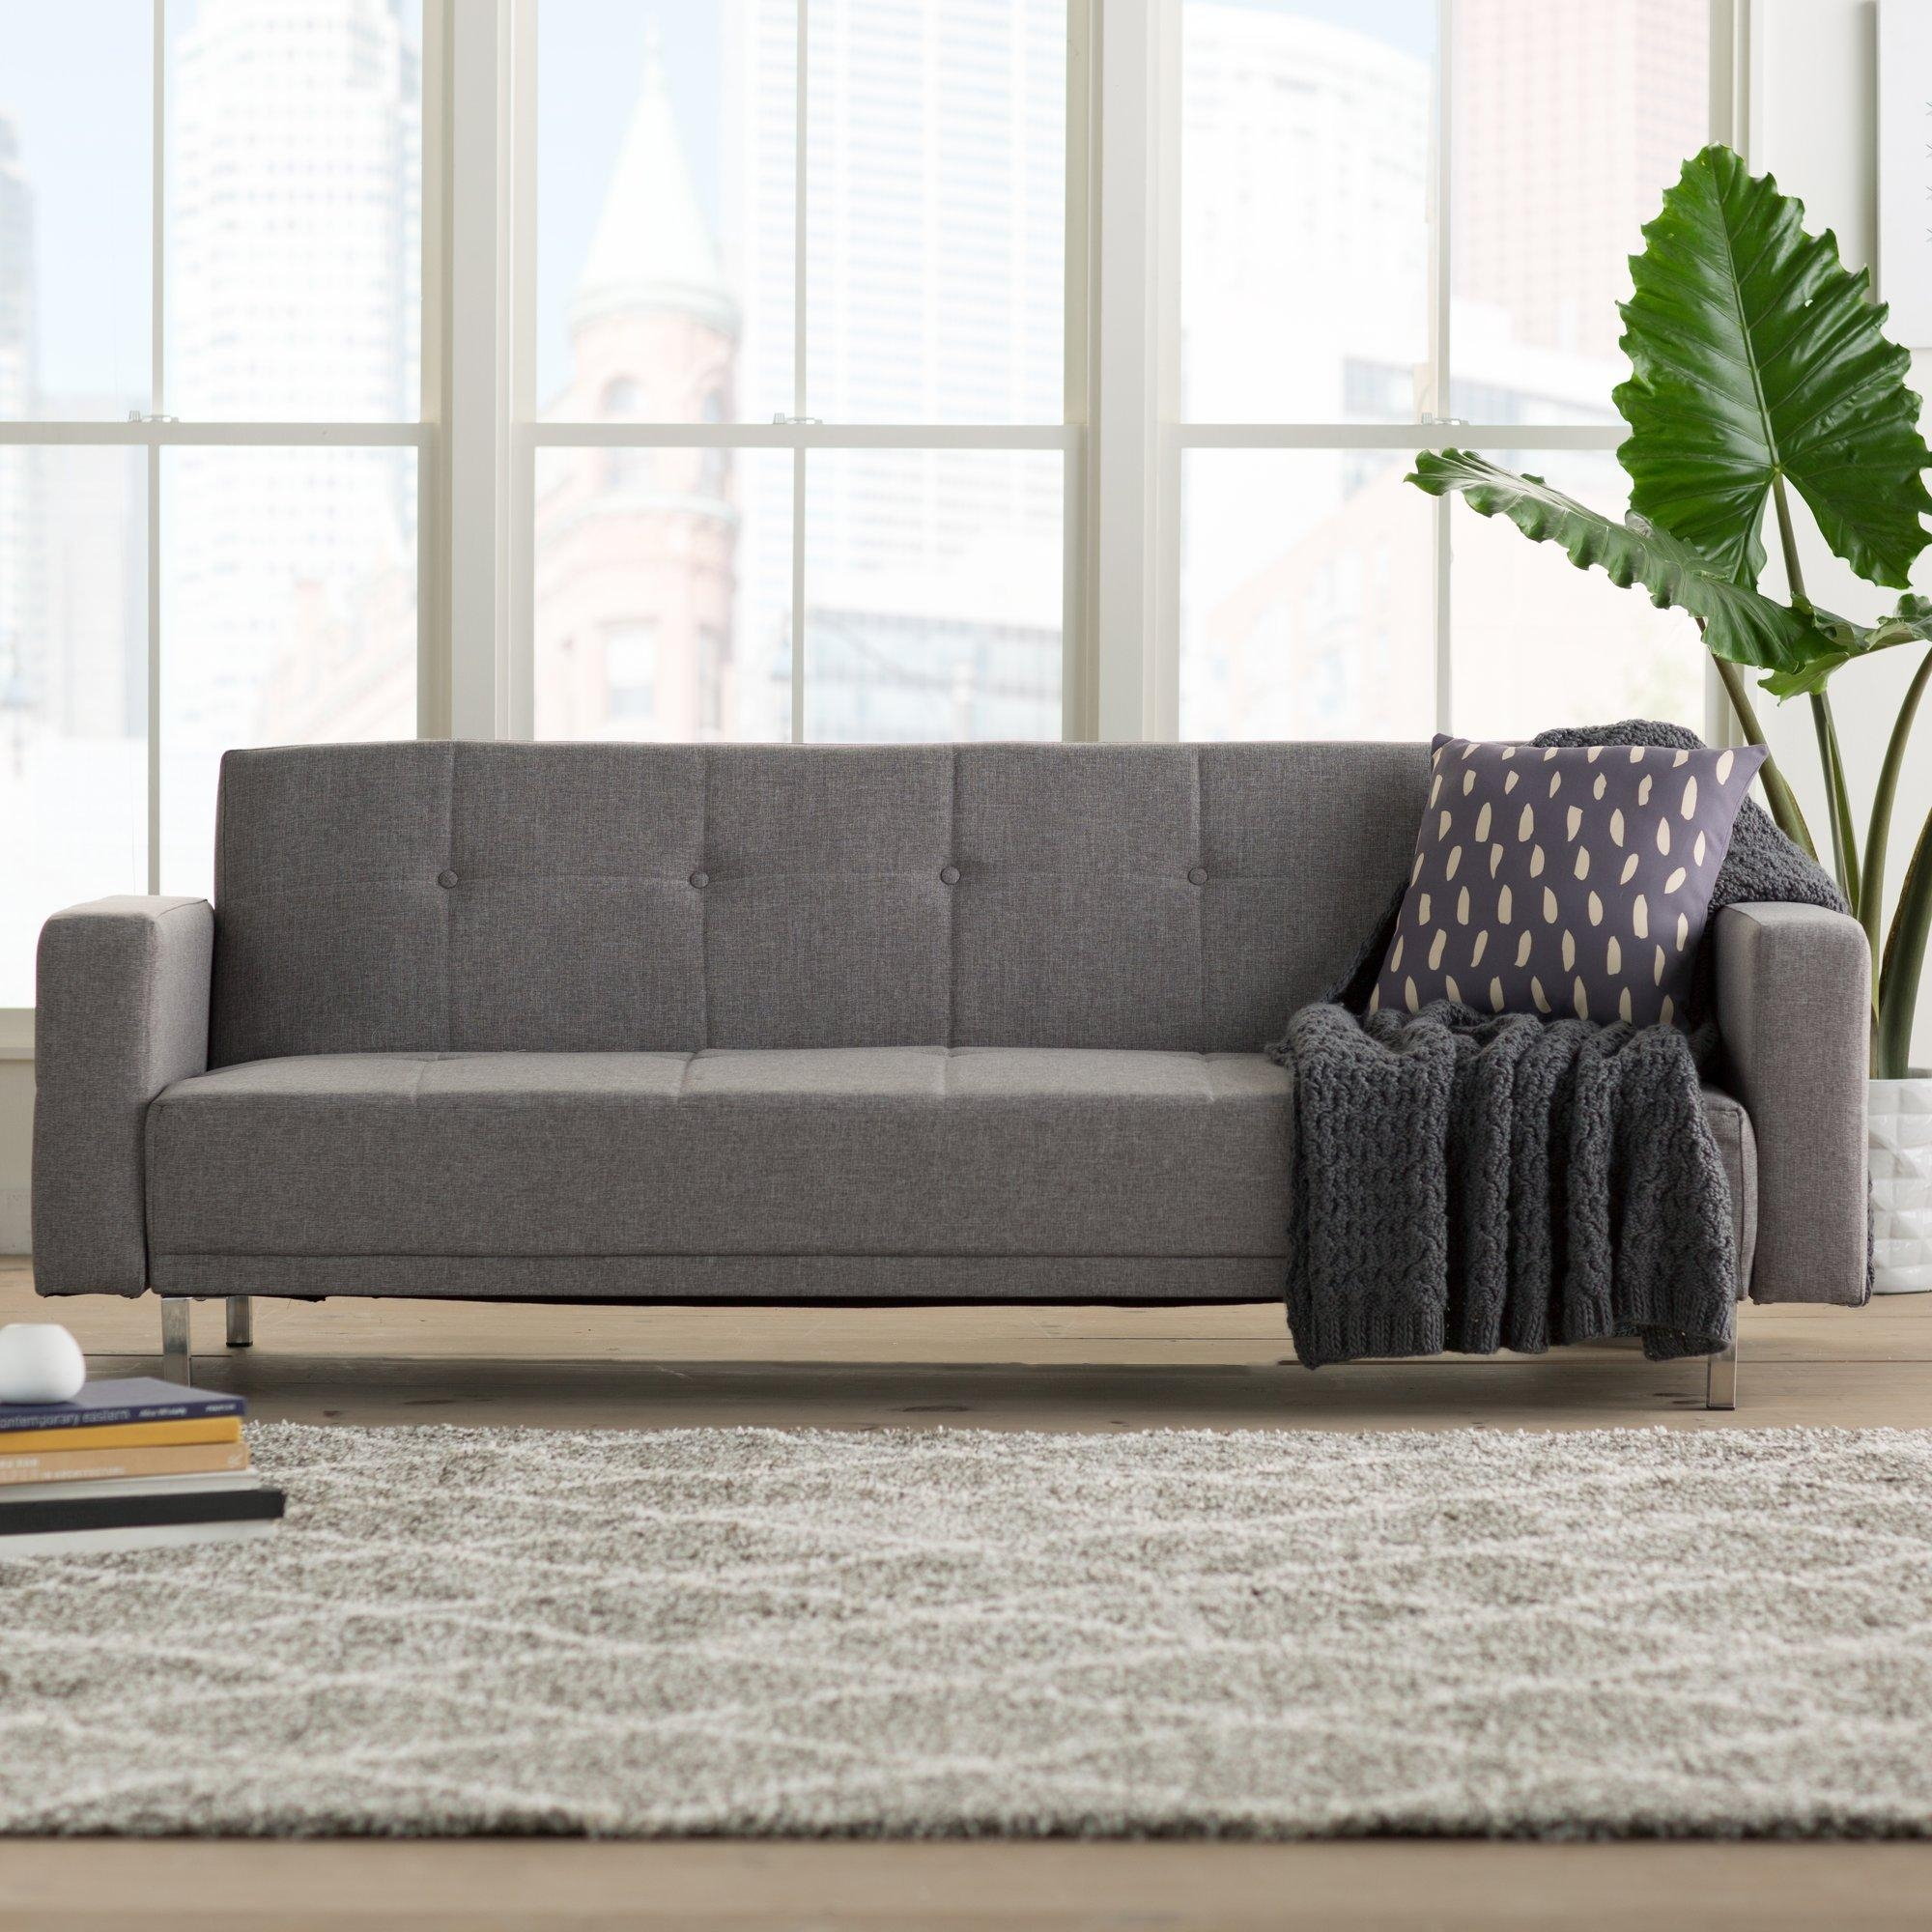 Furniture: Castro Convertible Bed For Exciting Sofabed Design Throughout Carlyle Sofa Beds (Image 3 of 20)